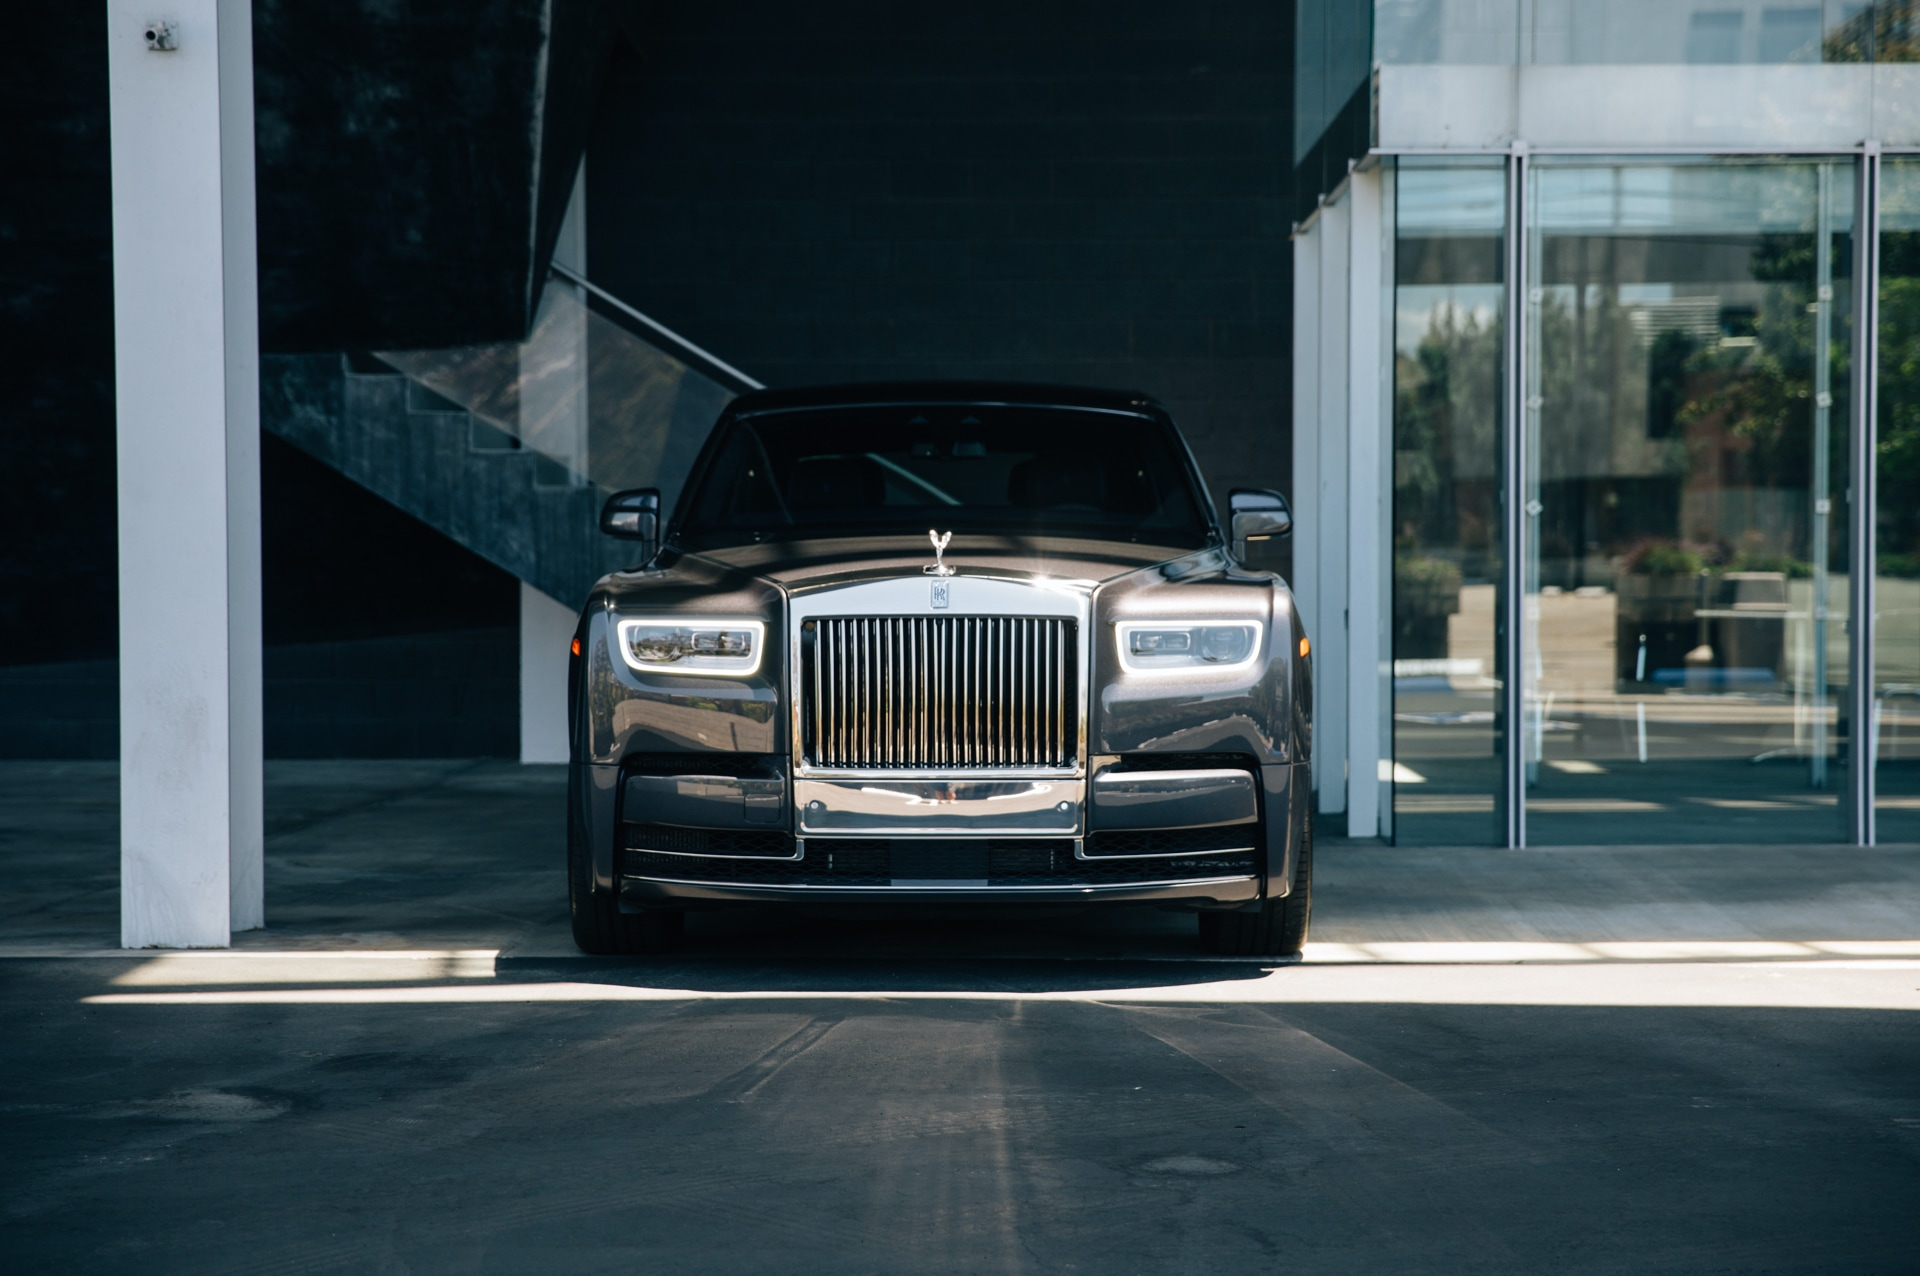 A front-on shot of the Rolls-Royce Phantom with bright sunlight reflecting against the Pantheon Grille and headlights